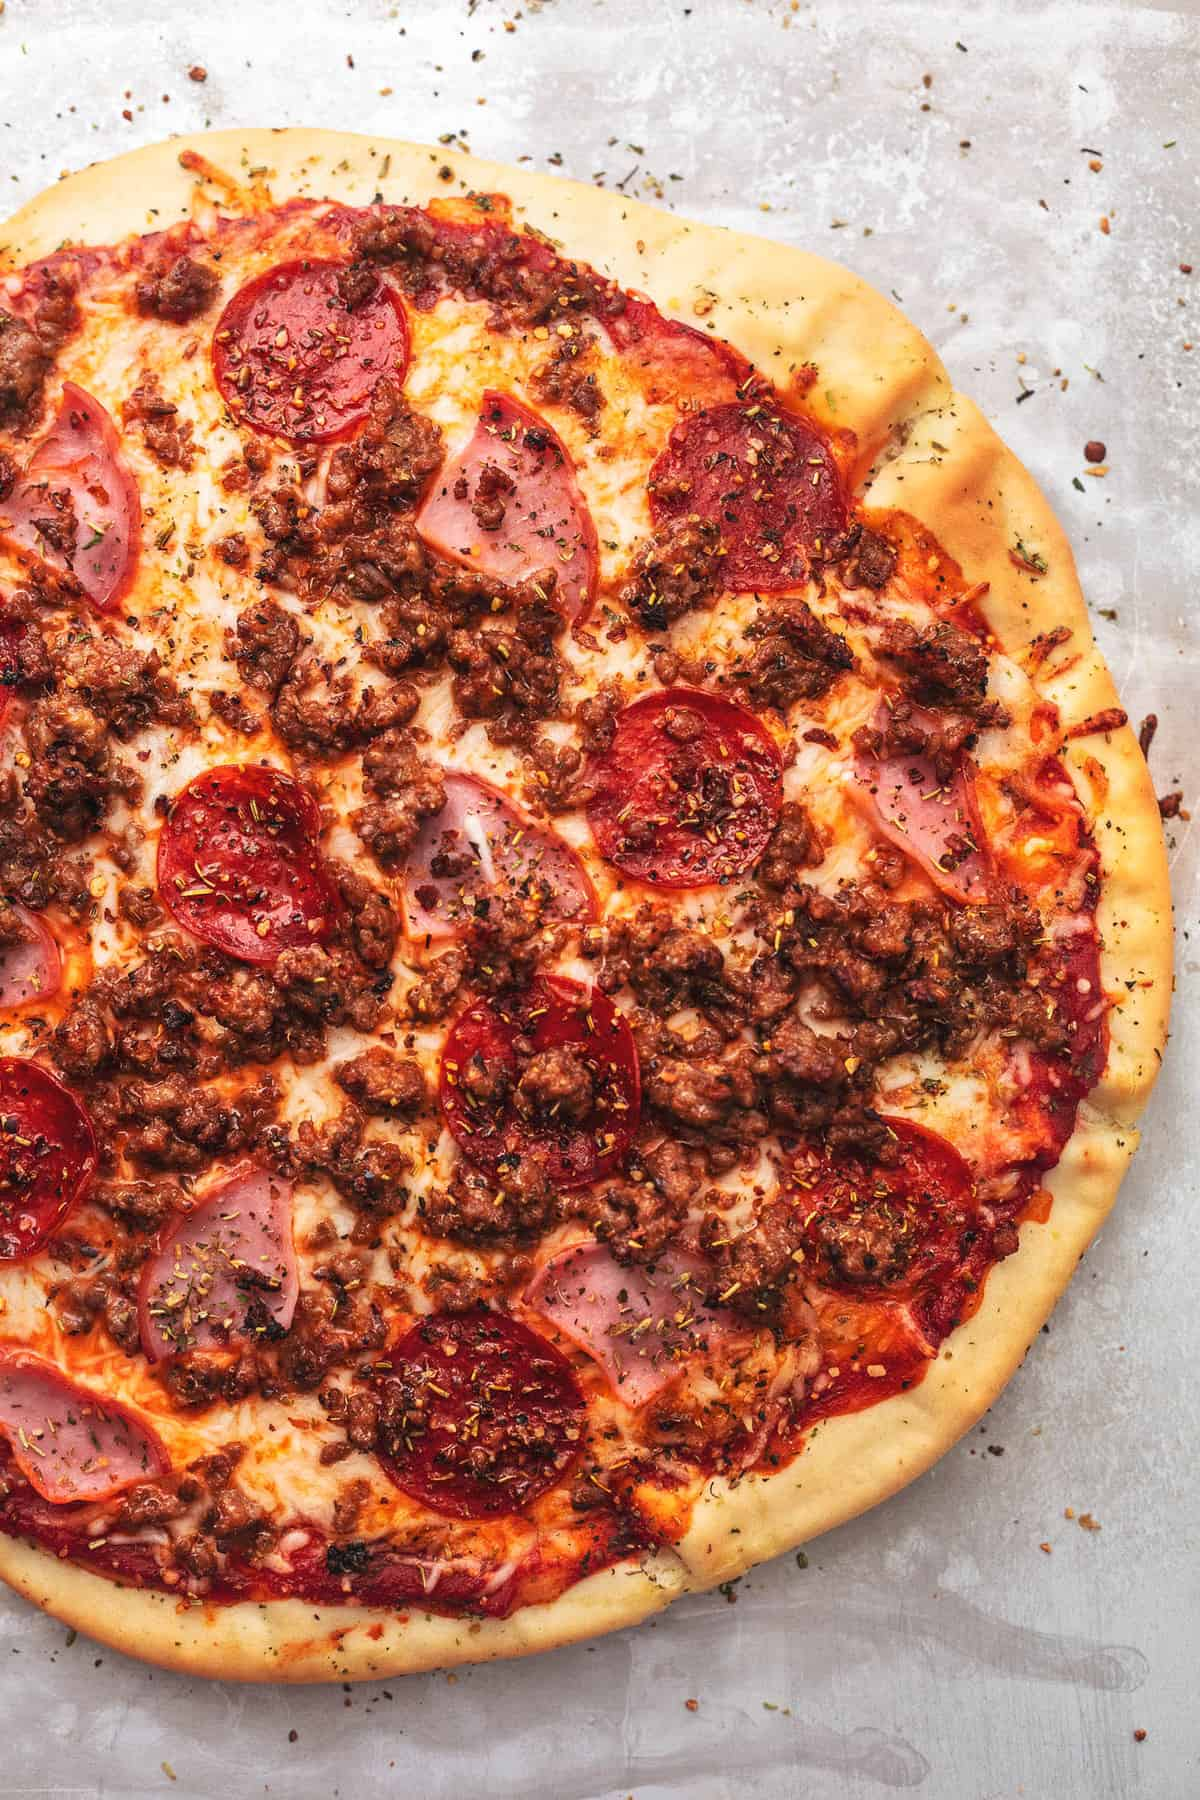 Meat Lovers Pizza recipe | lecremedelacrumb.com